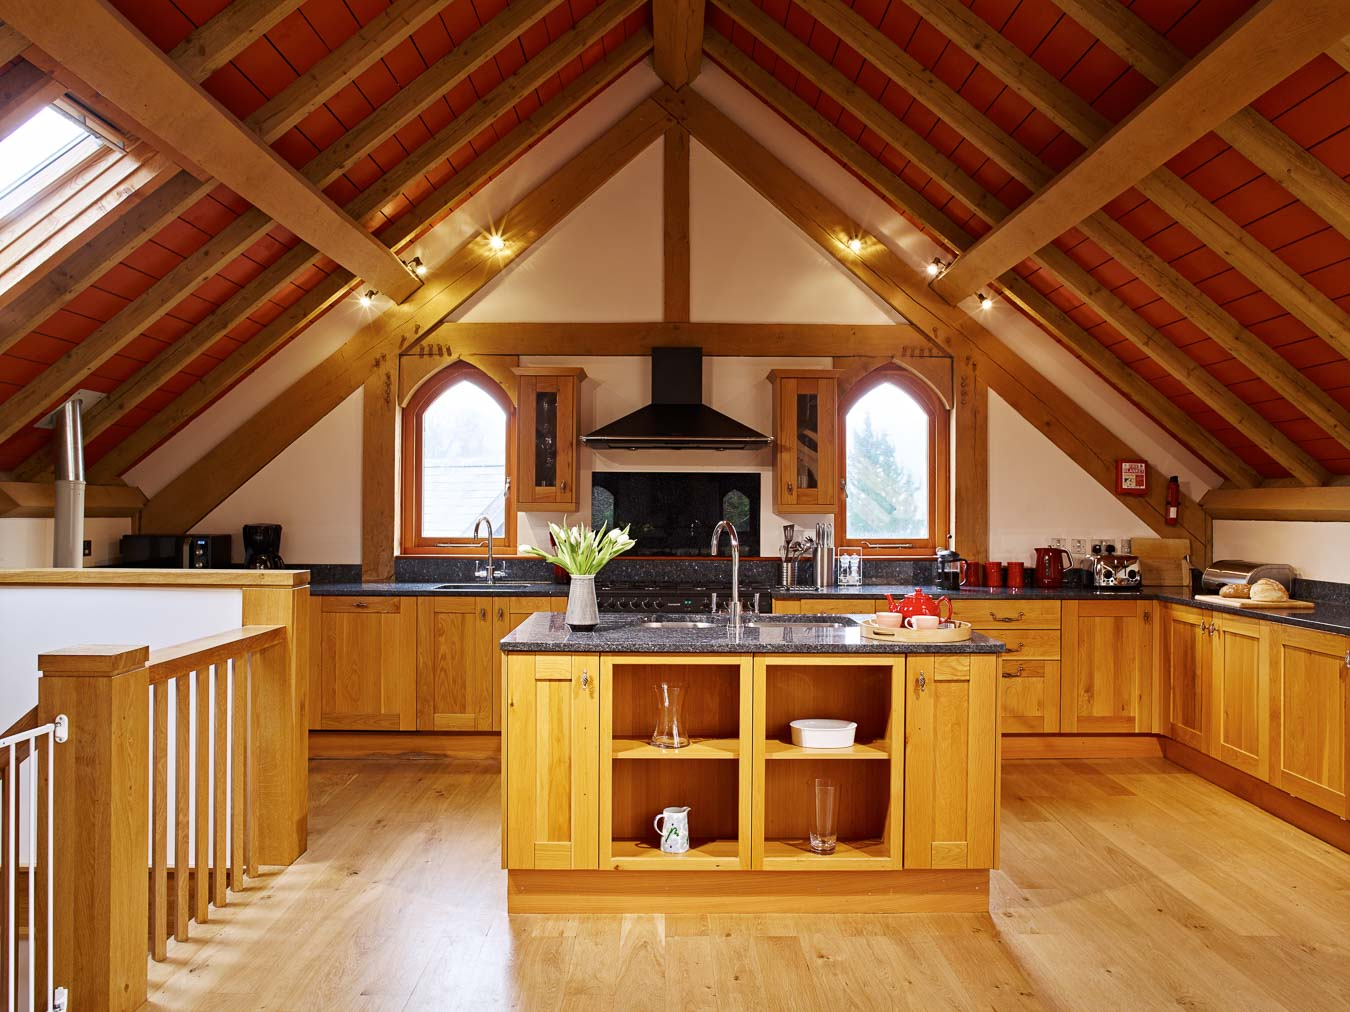 Granite work tops, bespoke kitchen, gas range and two fridges. Orchard Lodge's kitchen has everything and more you would need for an exceptional holiday in South Devon.